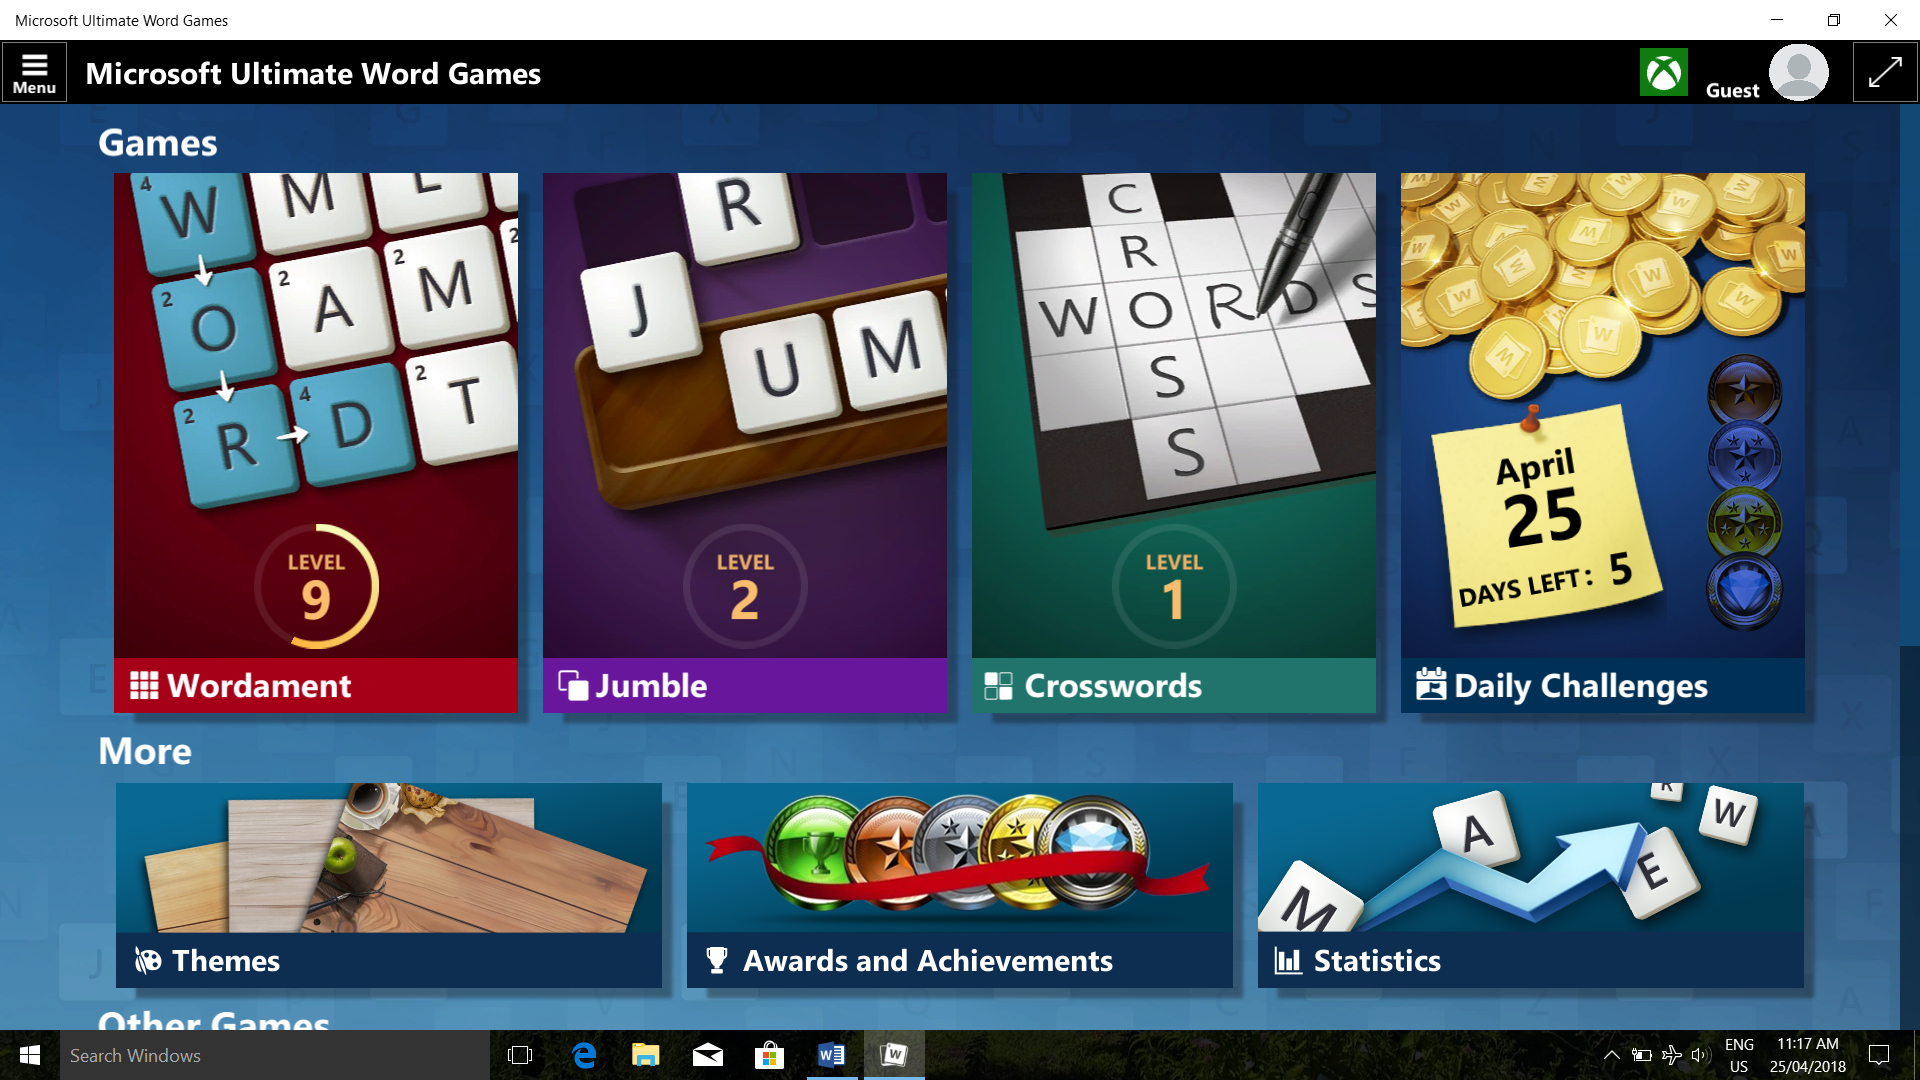 Some Microsoft Casual Games interface text and icons too